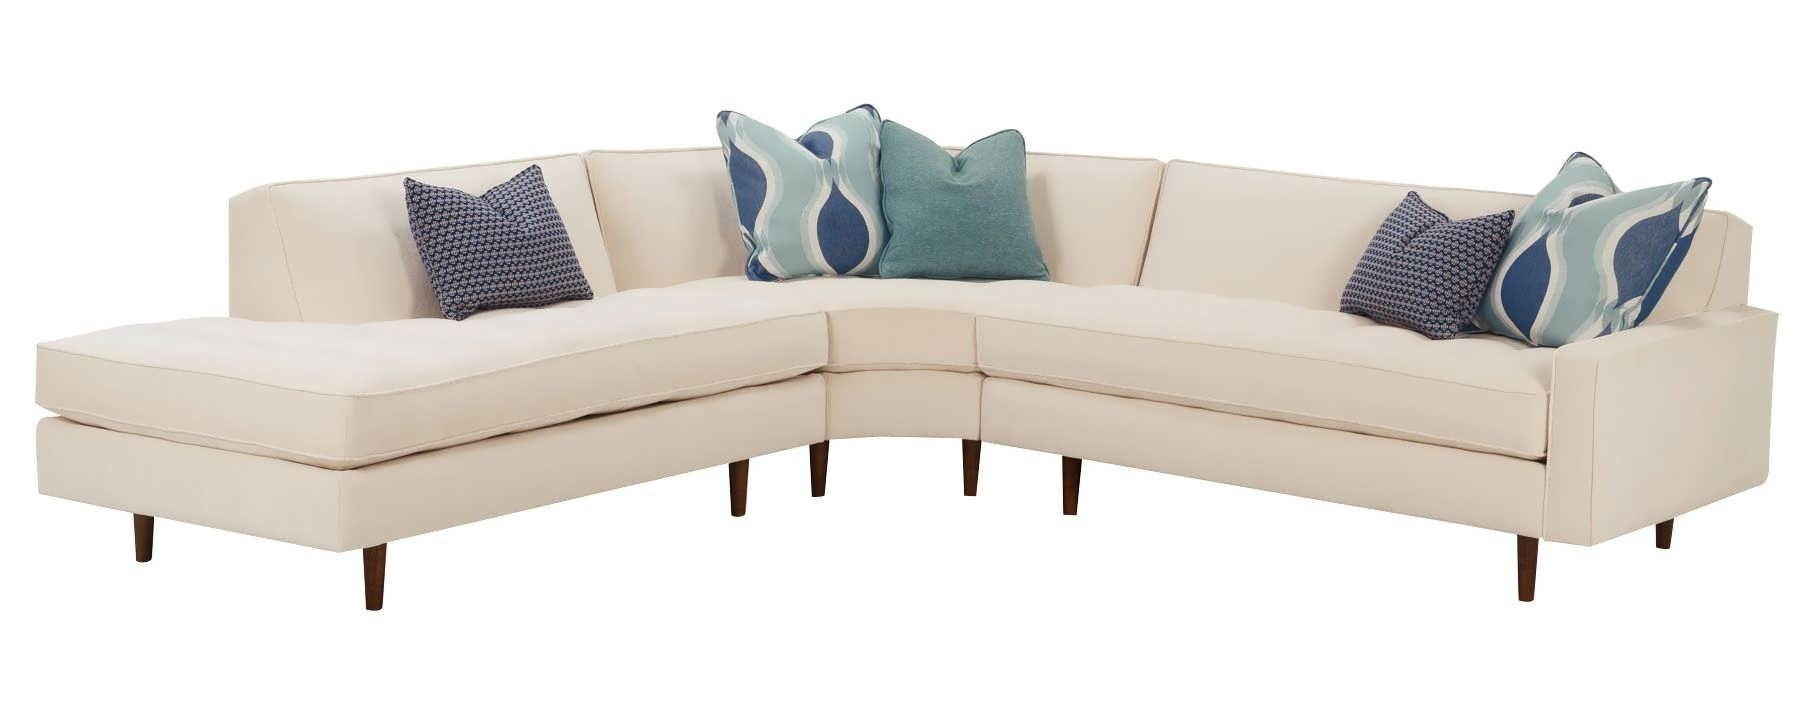 Mid Century Modern Sectional Sofa – Ashleyornot Within Mid Century Modern Sectional (Image 5 of 20)